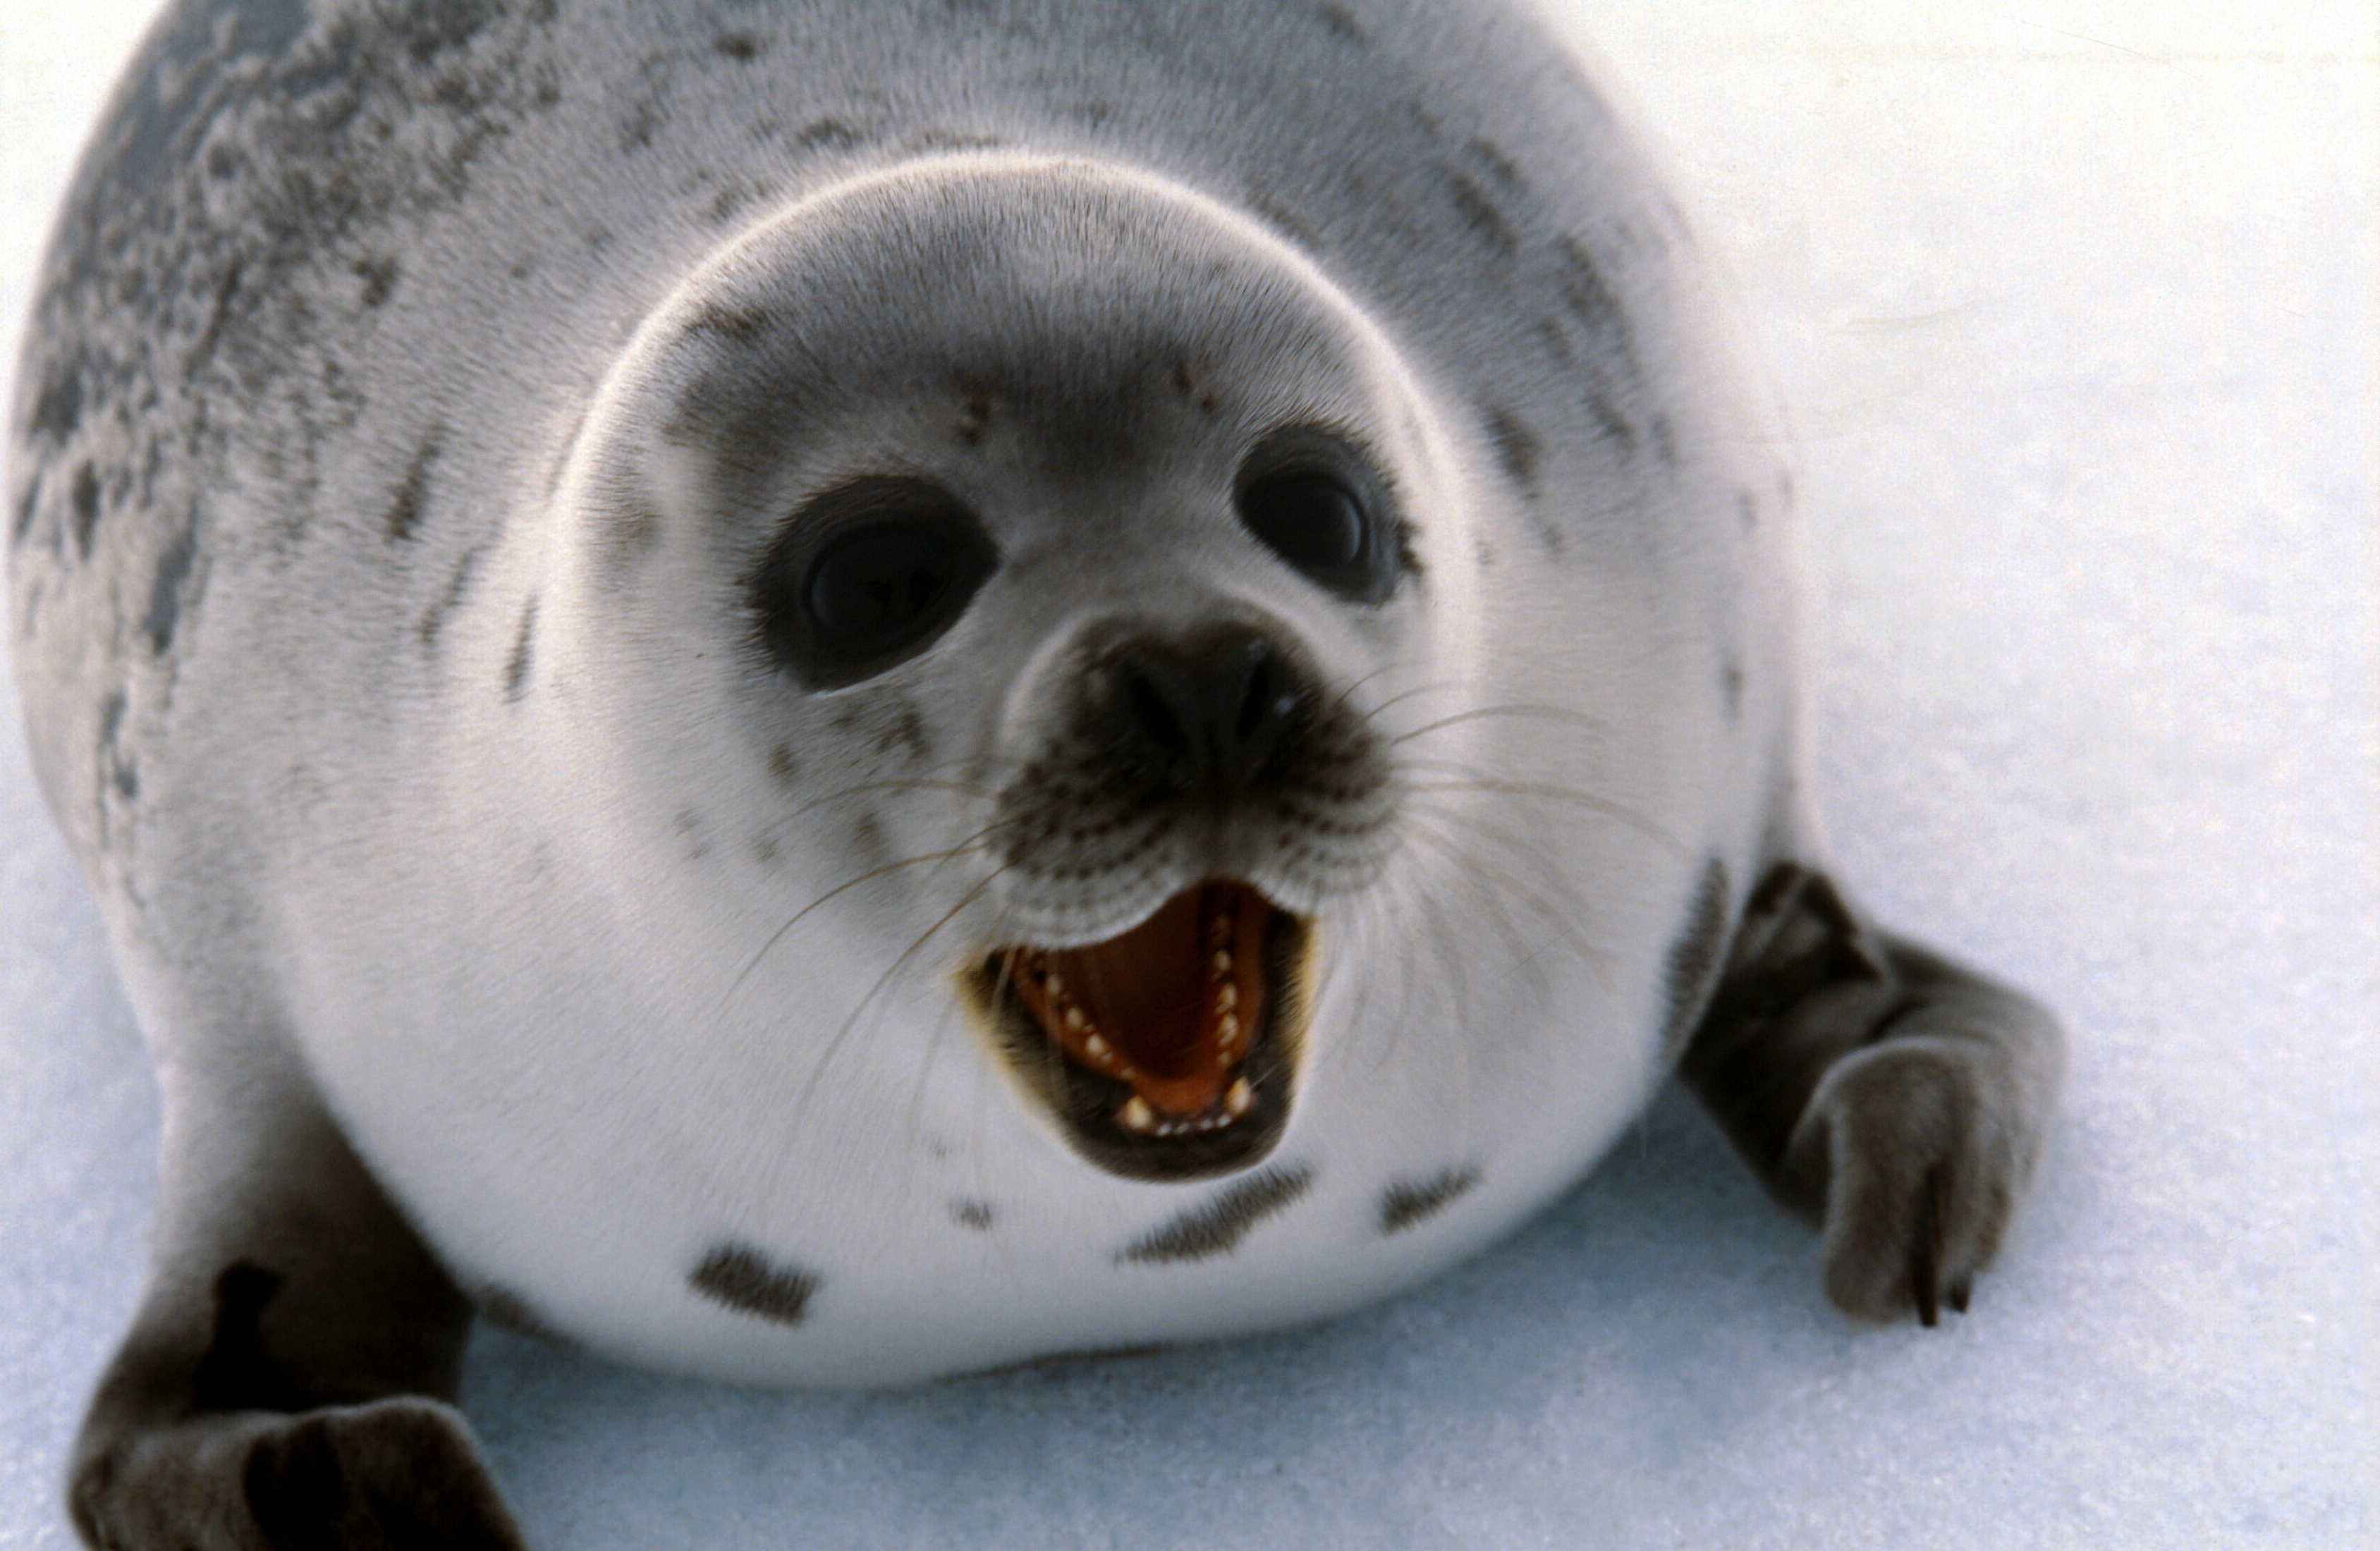 Norway considers an end to seal hunt subsidies